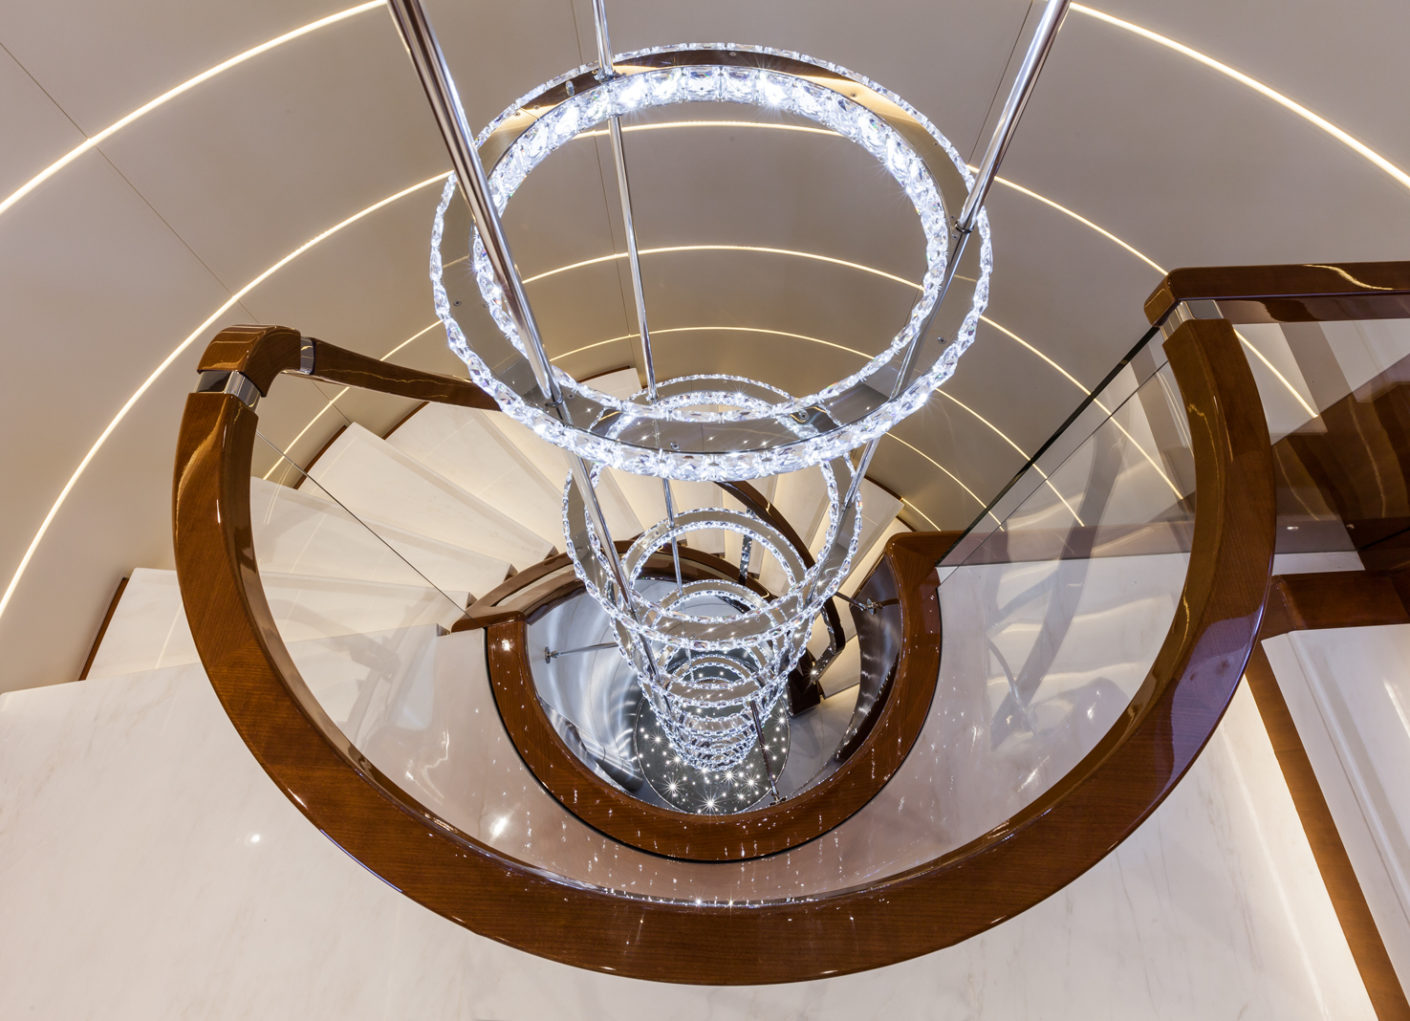 The steel rings studded with Swarovski crystals provide a decorative light sculpture for the spiral-shaped staircase connecting the lower to the upper deck.